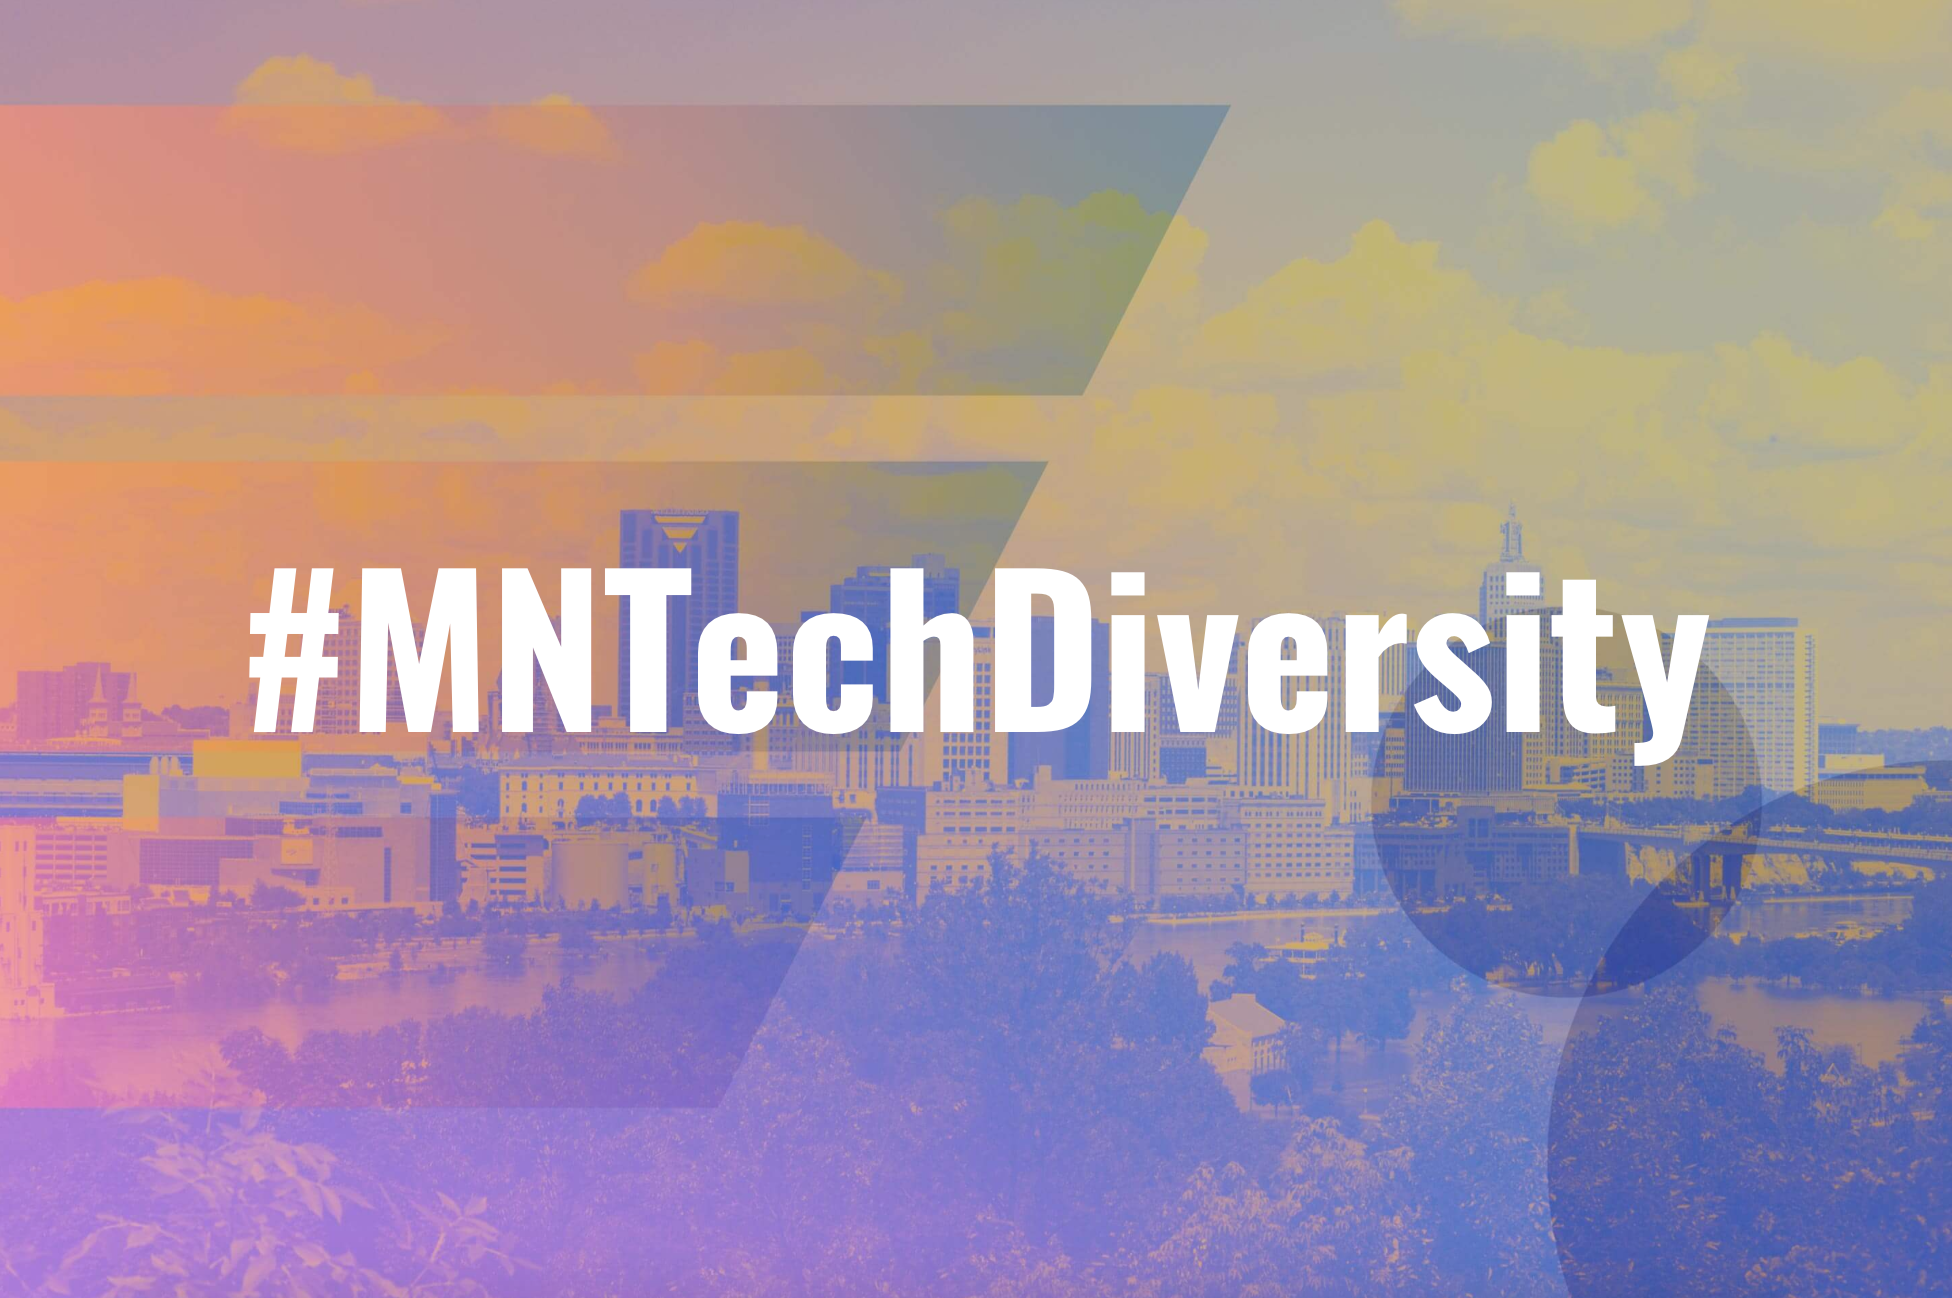 MN Tech Diversity Pledge banner with Minneapolis skyline in the background